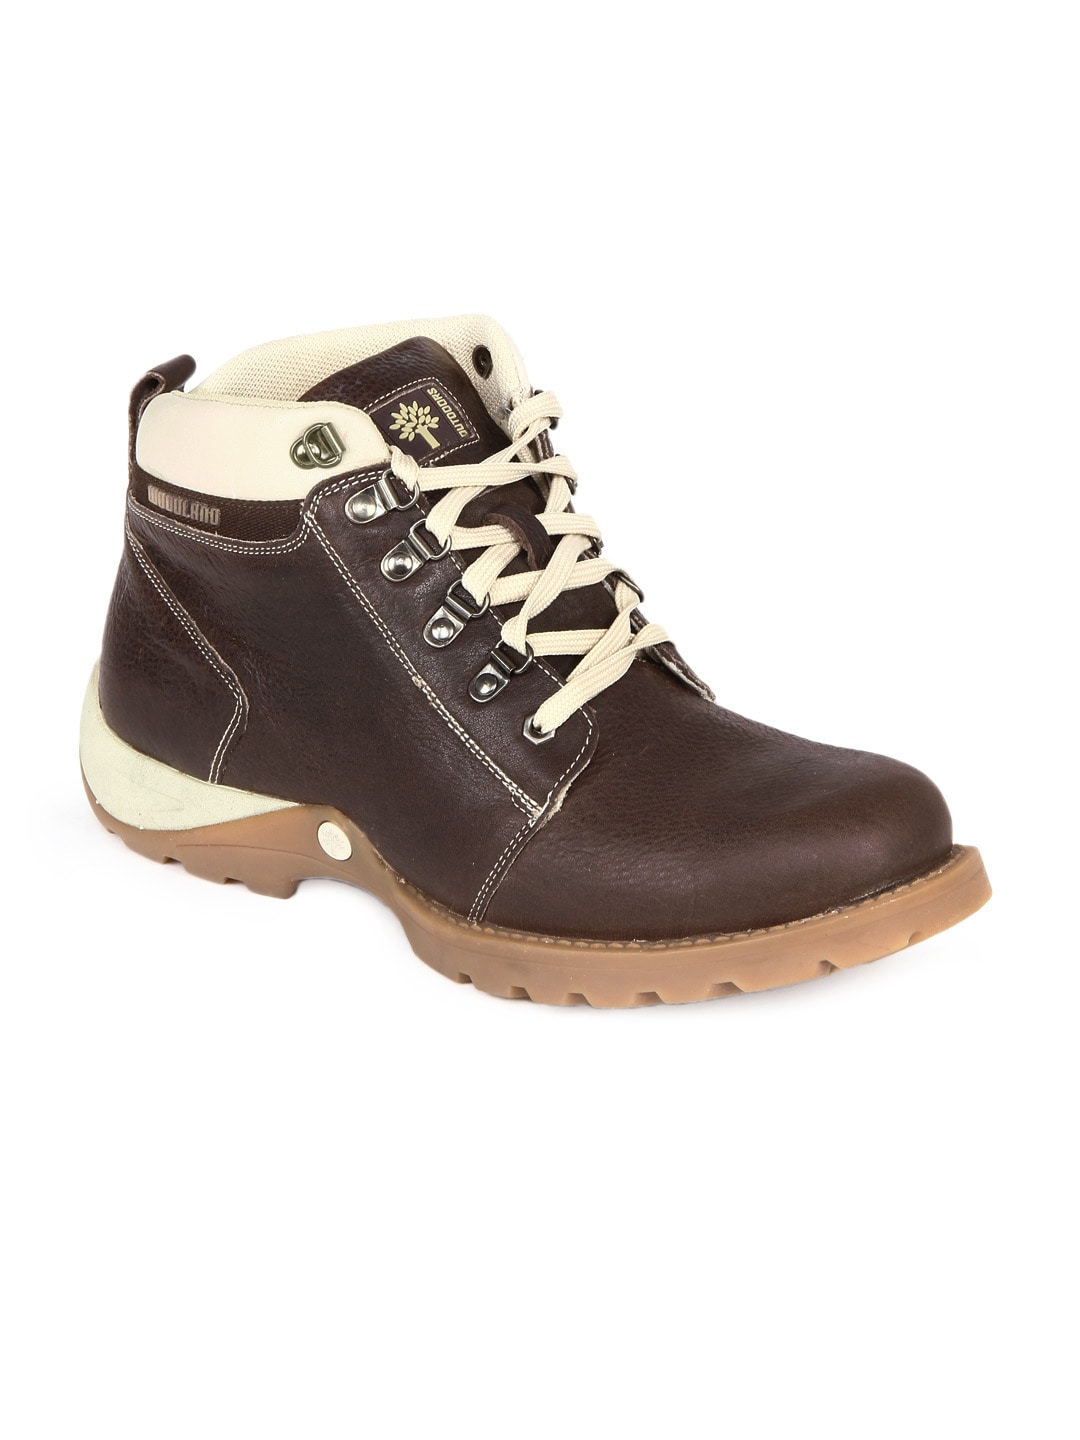 buy woodland brown boots 288 footwear for 103991